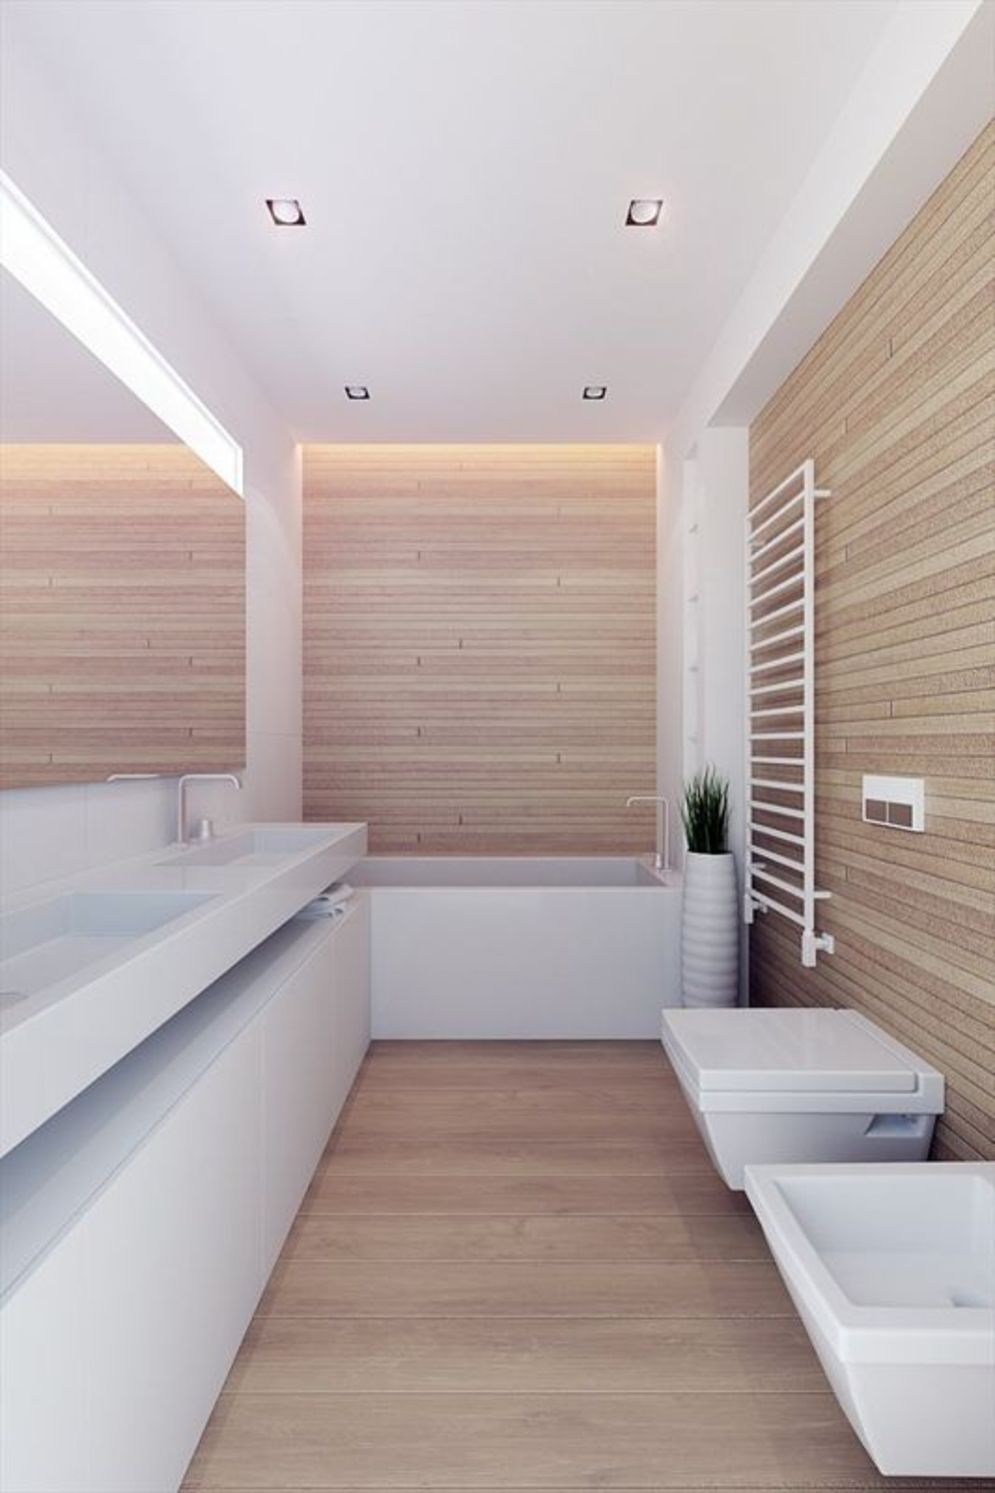 Most savvy bathroom designs with elegant wood finish to give more natural feel Image 5